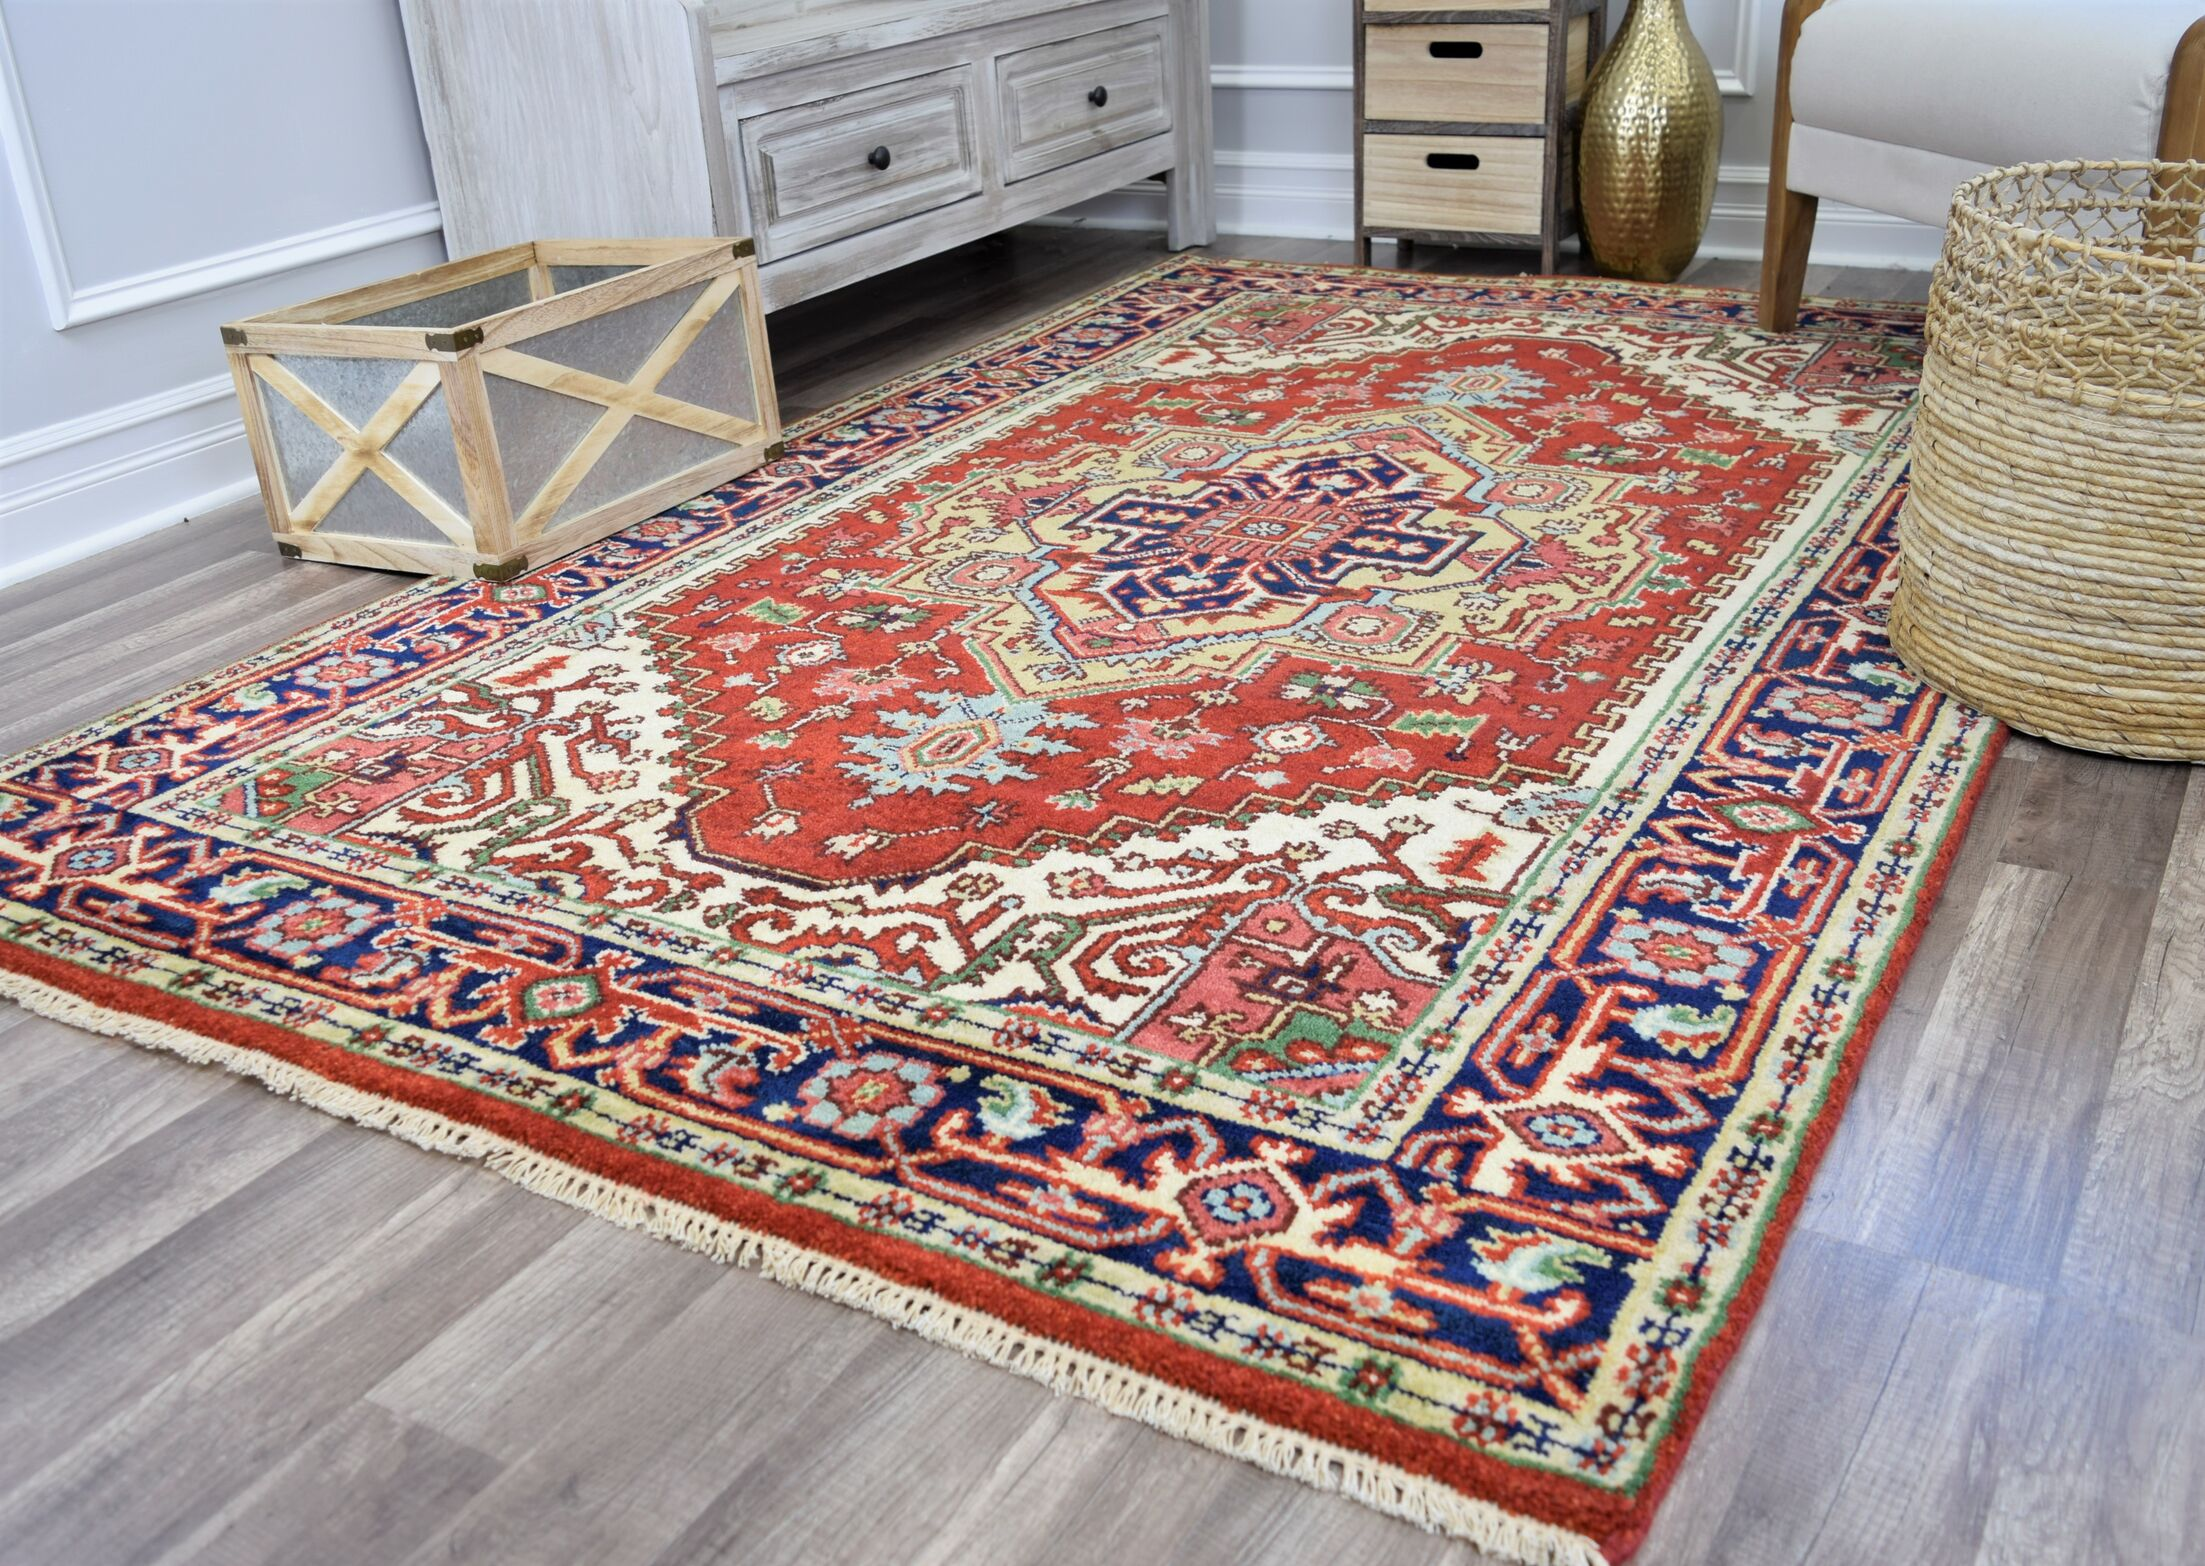 Oriole Hand-Knotted Wool Red/Beige Area Rug Rug Size: Rectangle 4' x 6'